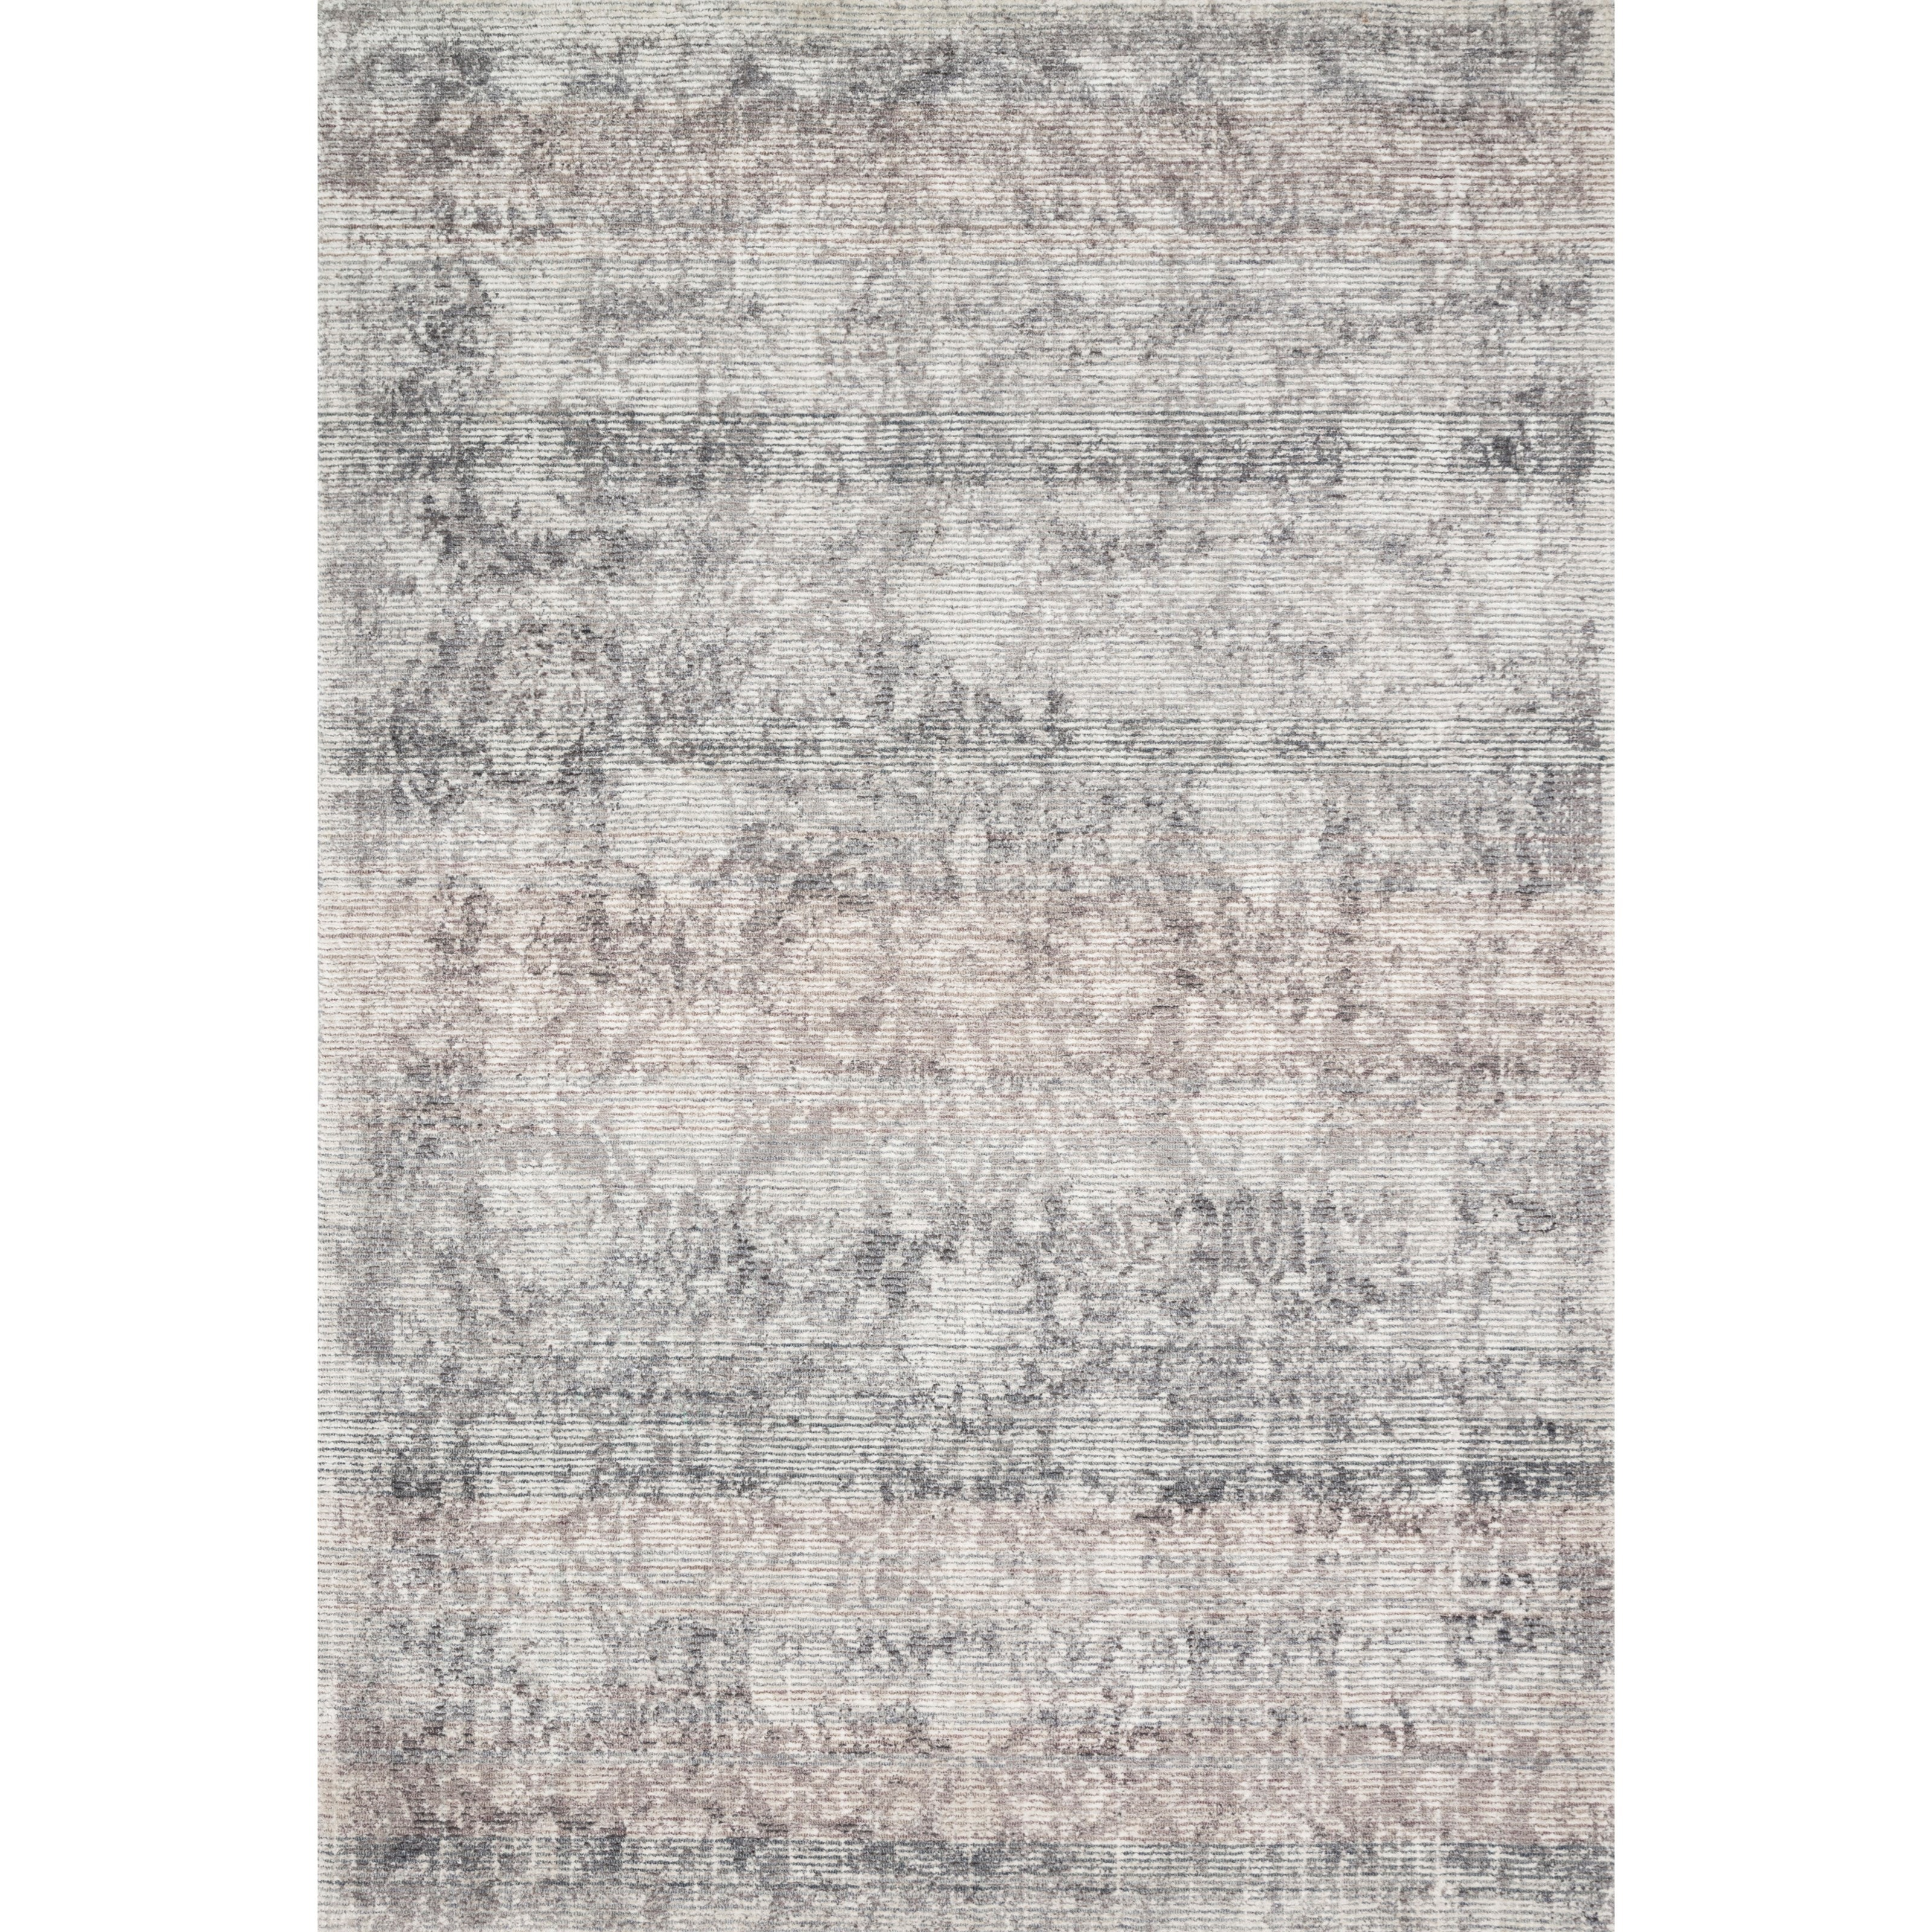 """Rumi 1'6"""" x 1'6""""  Pewter Rug by Loloi Rugs at Virginia Furniture Market"""